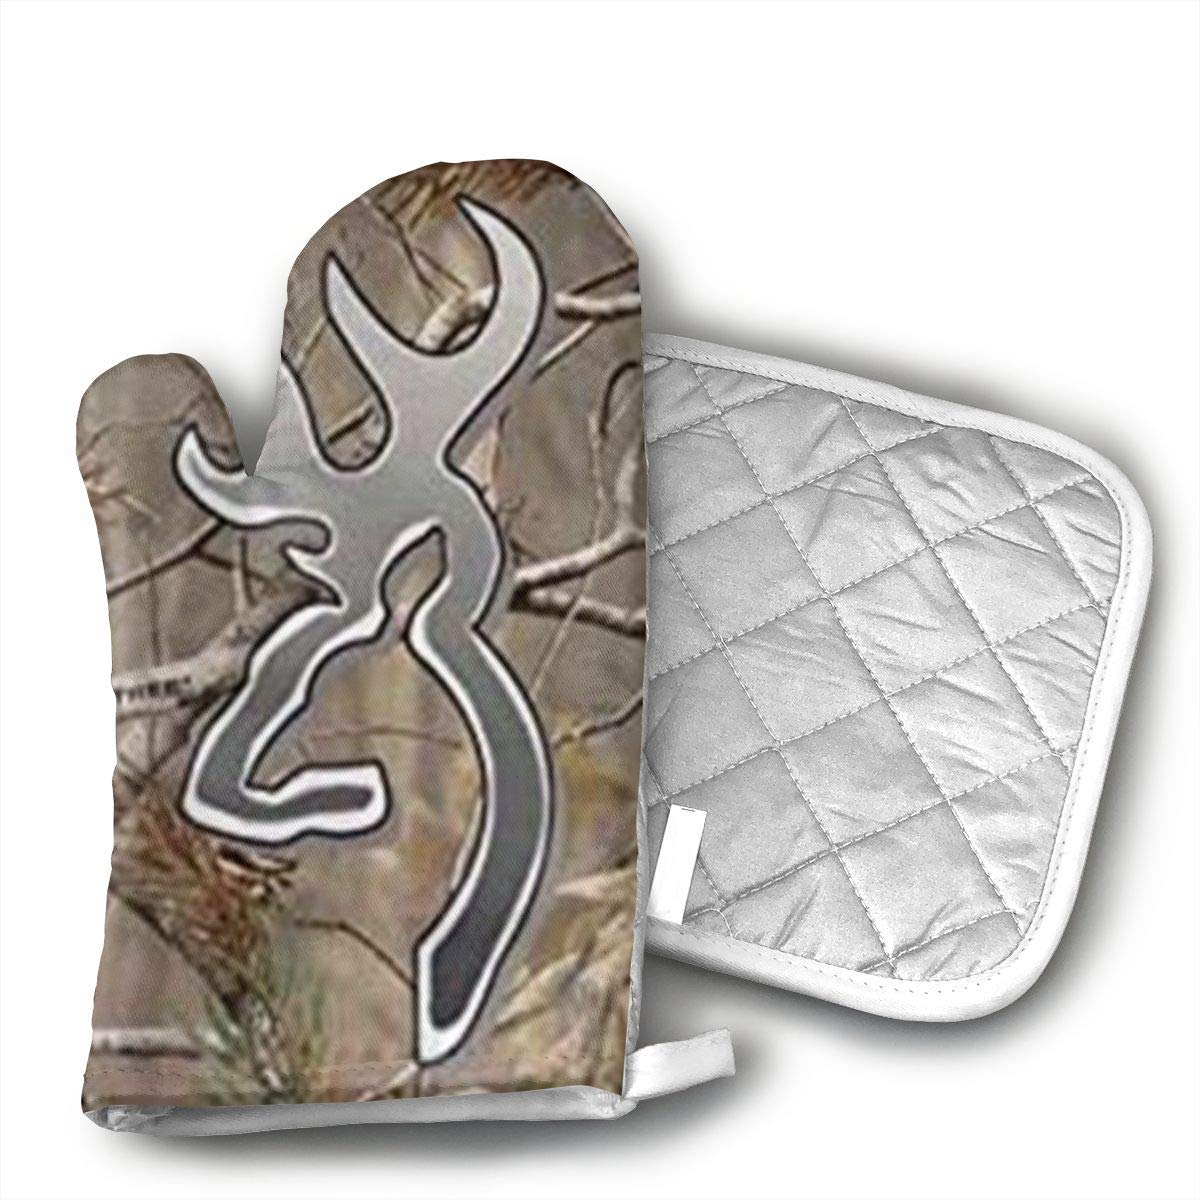 Camouflage Realtree Kitchen Potholder - Heat Resistant Oven Gloves to Protect Hands and Surfaces with Non-Slip Grip,Ideal for Handling Hot Cookware Items.